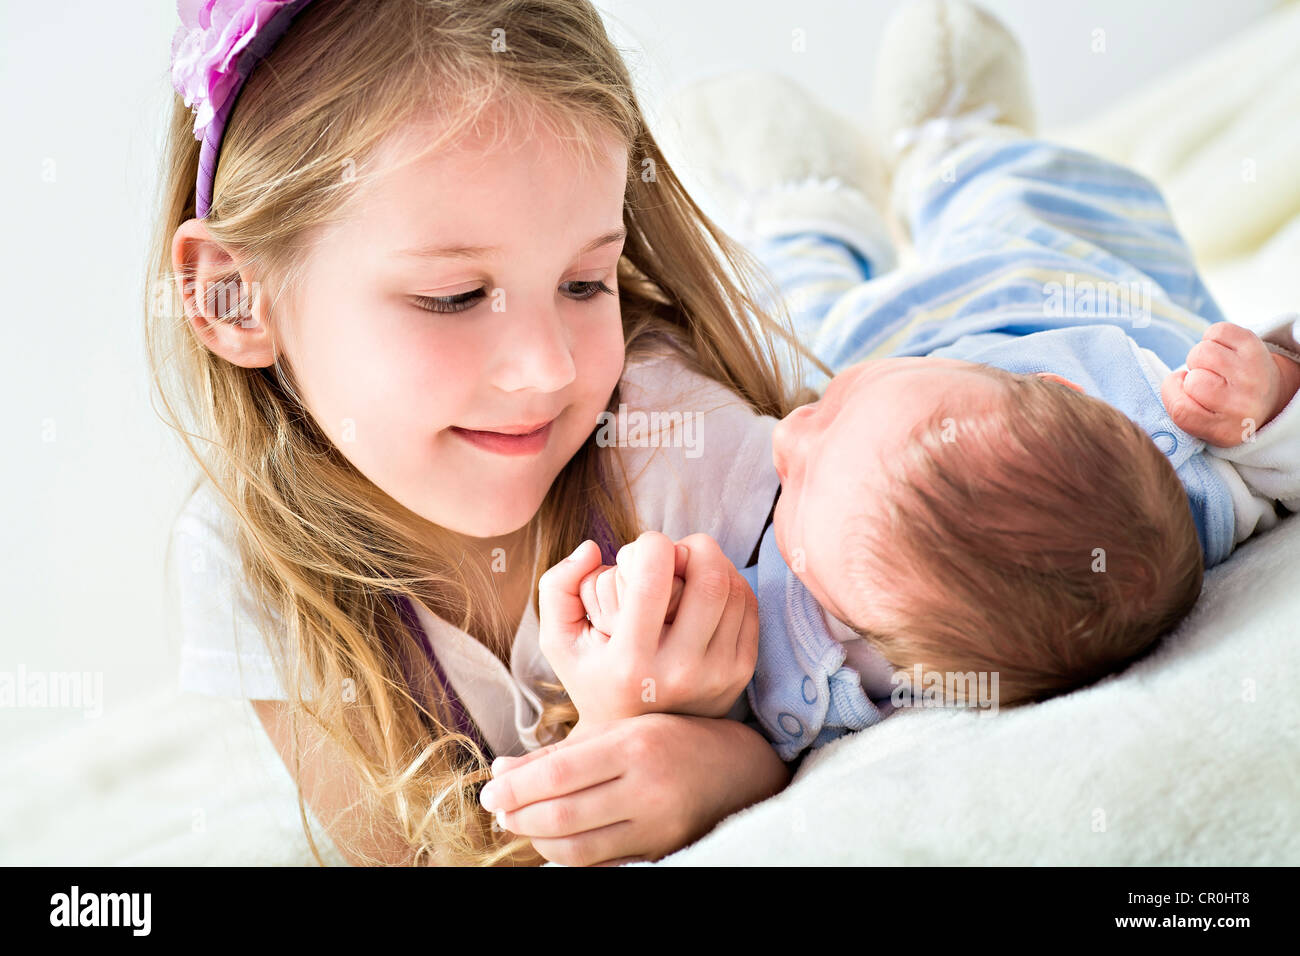 Girl and a baby, 1 month - Stock Image